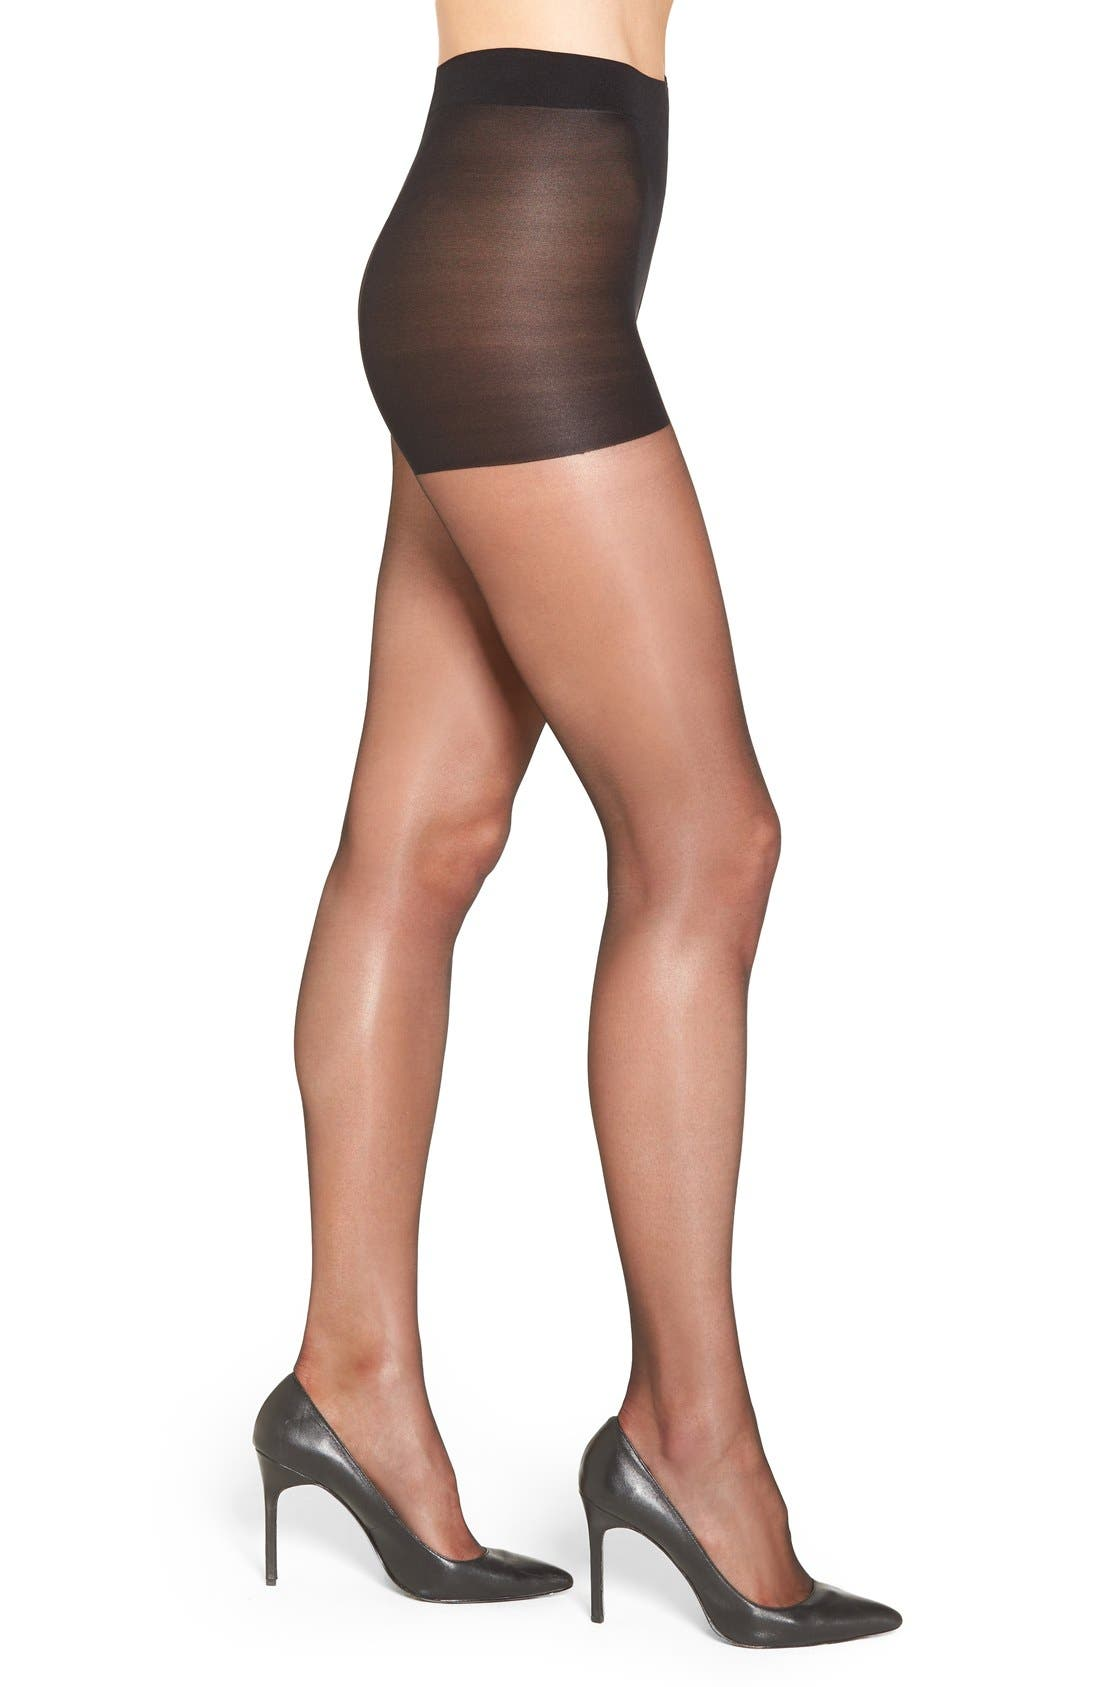 Nordstrom 'Gloss' Control Top Pantyhose (3 for $36)